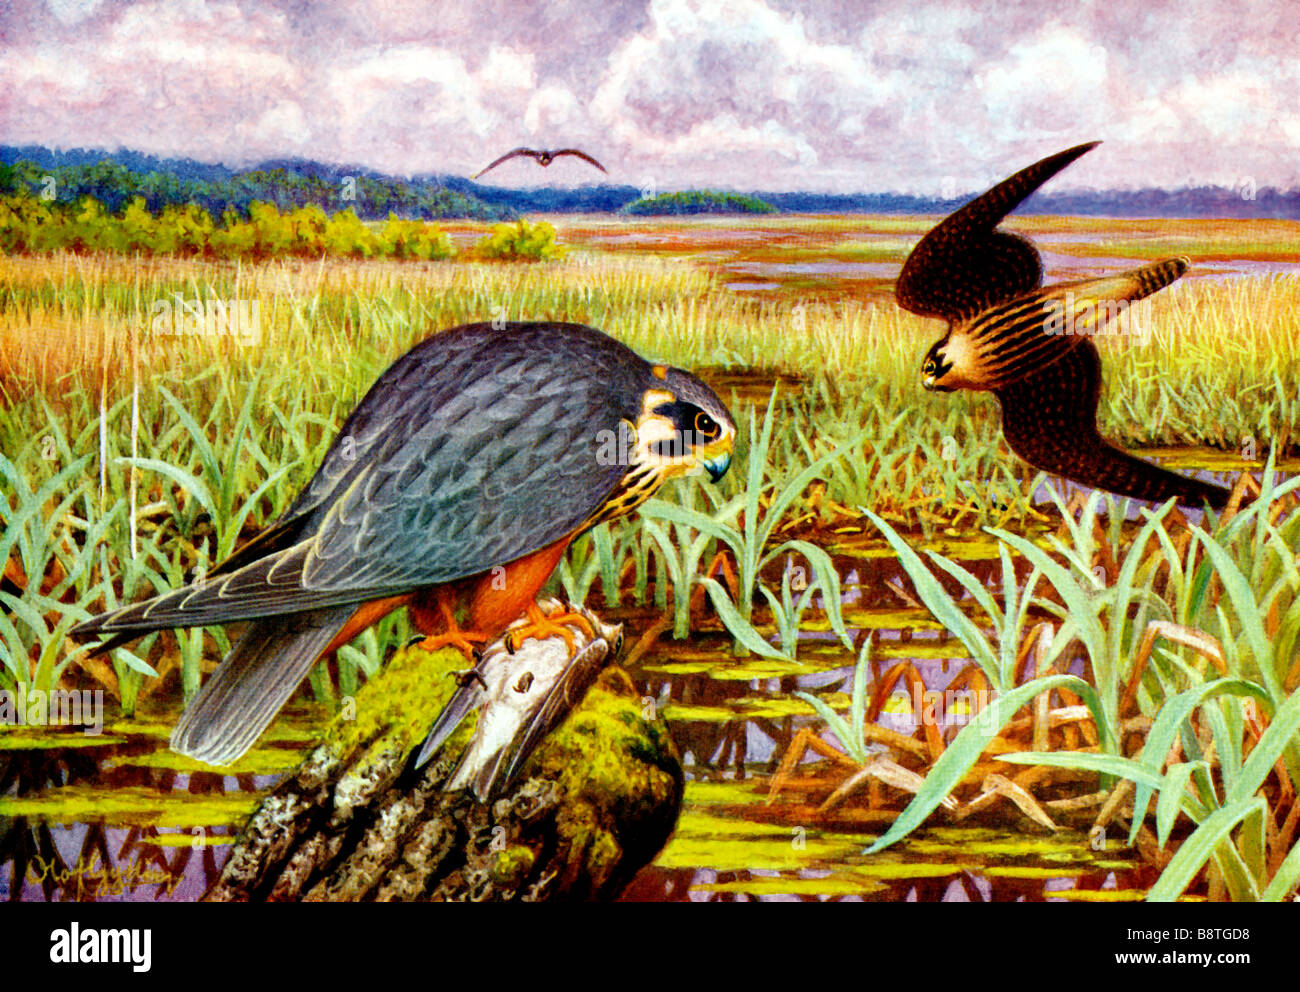 The Eurasian Hobby (Falco subbuteo) an old male and a young bird, 19th century illustration by Olof Gylling (1850 Stock Photo